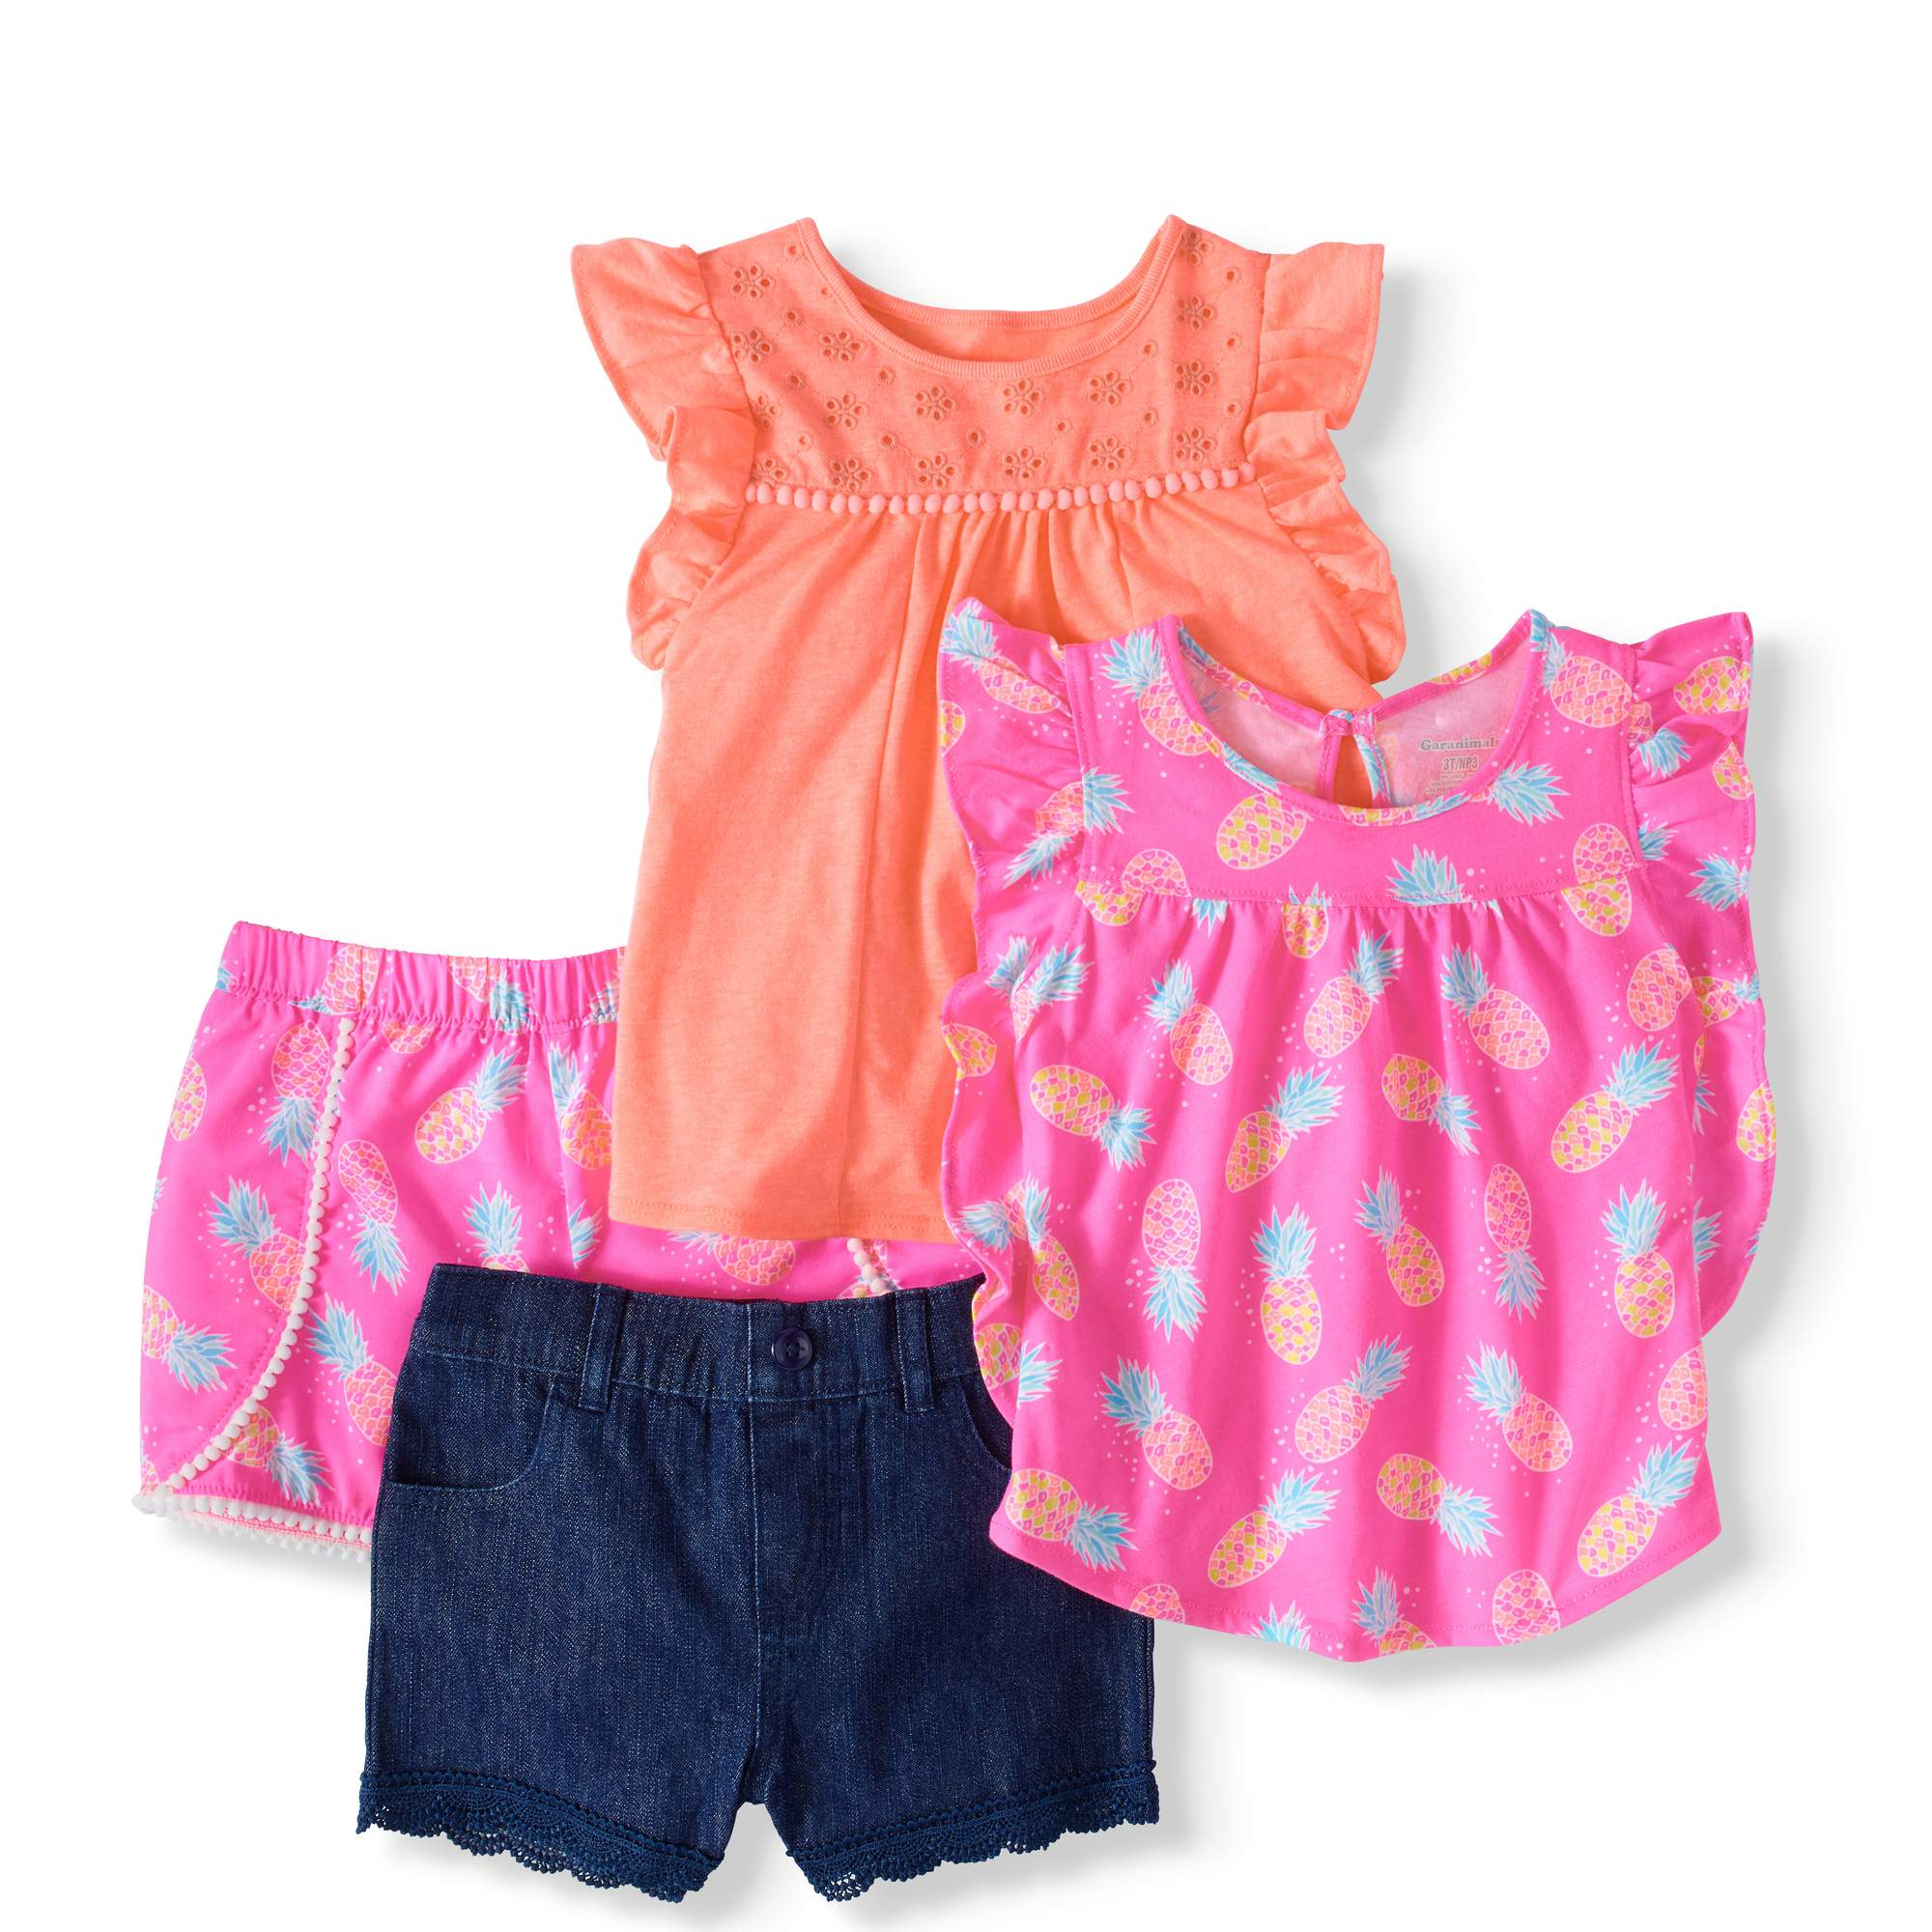 Toddler Girl Flutter Sleeve T-Shirt, Babydoll Top & Shorts, 4Pc Set